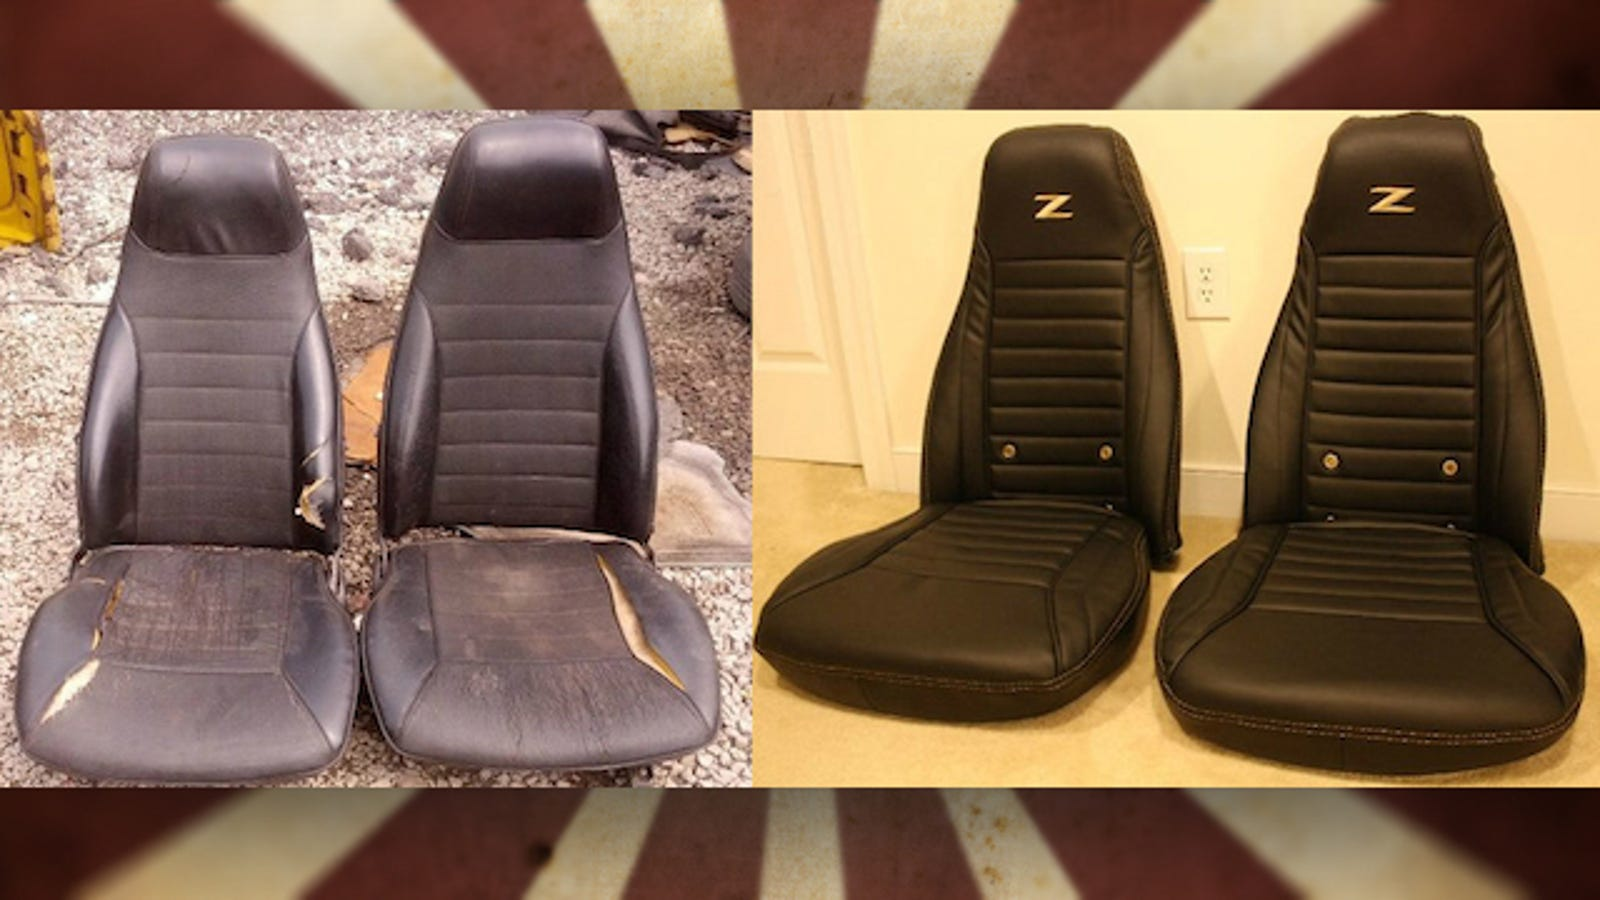 Transform Junker Car Seats into Good-Looking, Comfortable Office Chairs